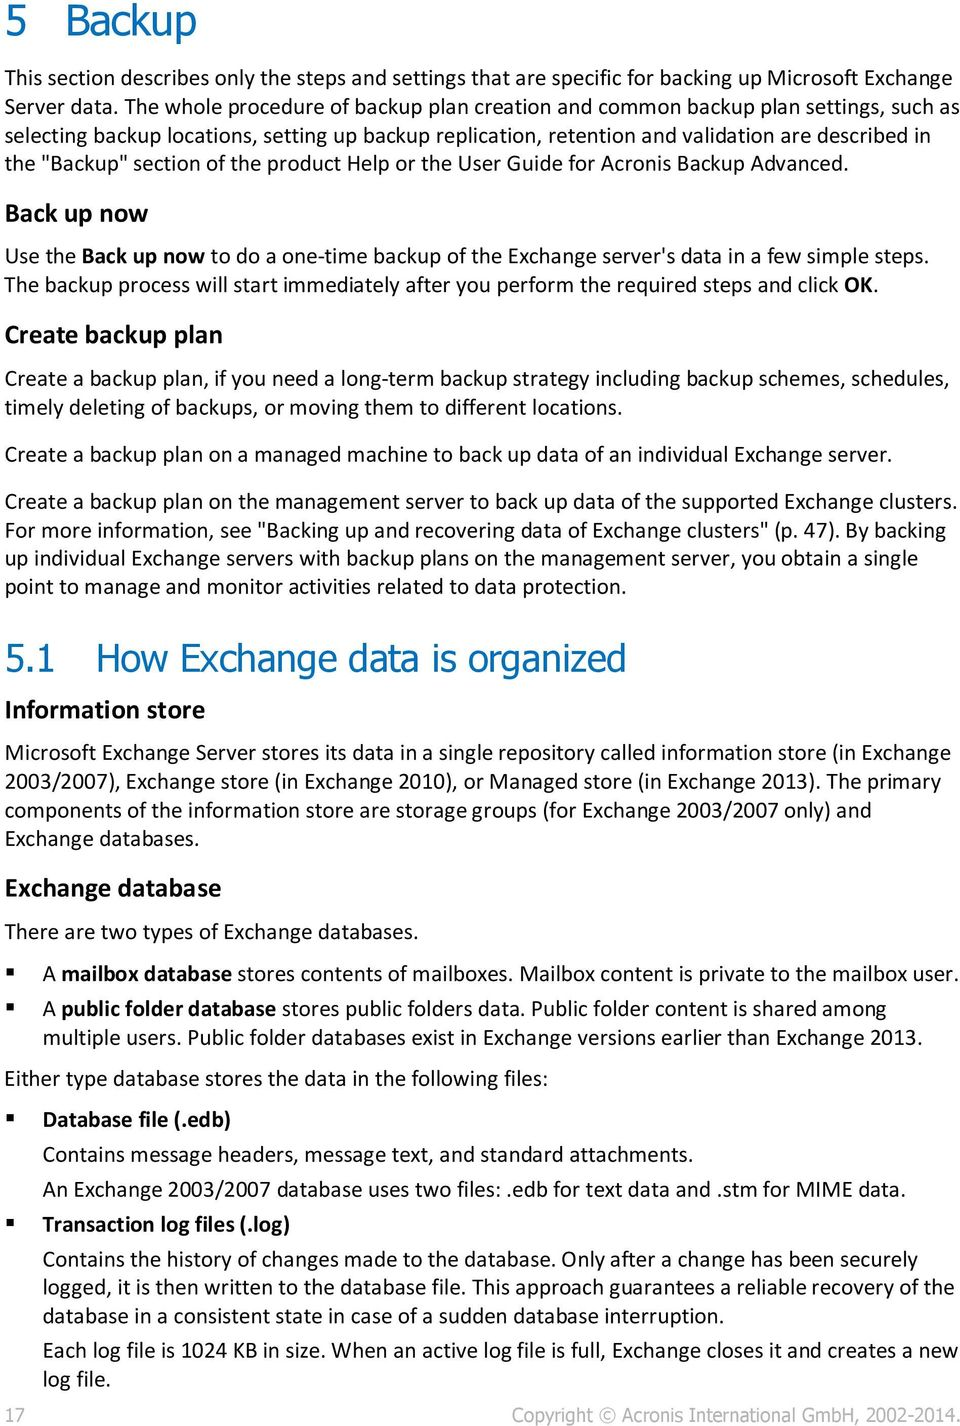 section of the product Help or the User Guide for Acronis Backup Advanced. Back up now Use the Back up now to do a one-time backup of the Exchange server's data in a few simple steps.